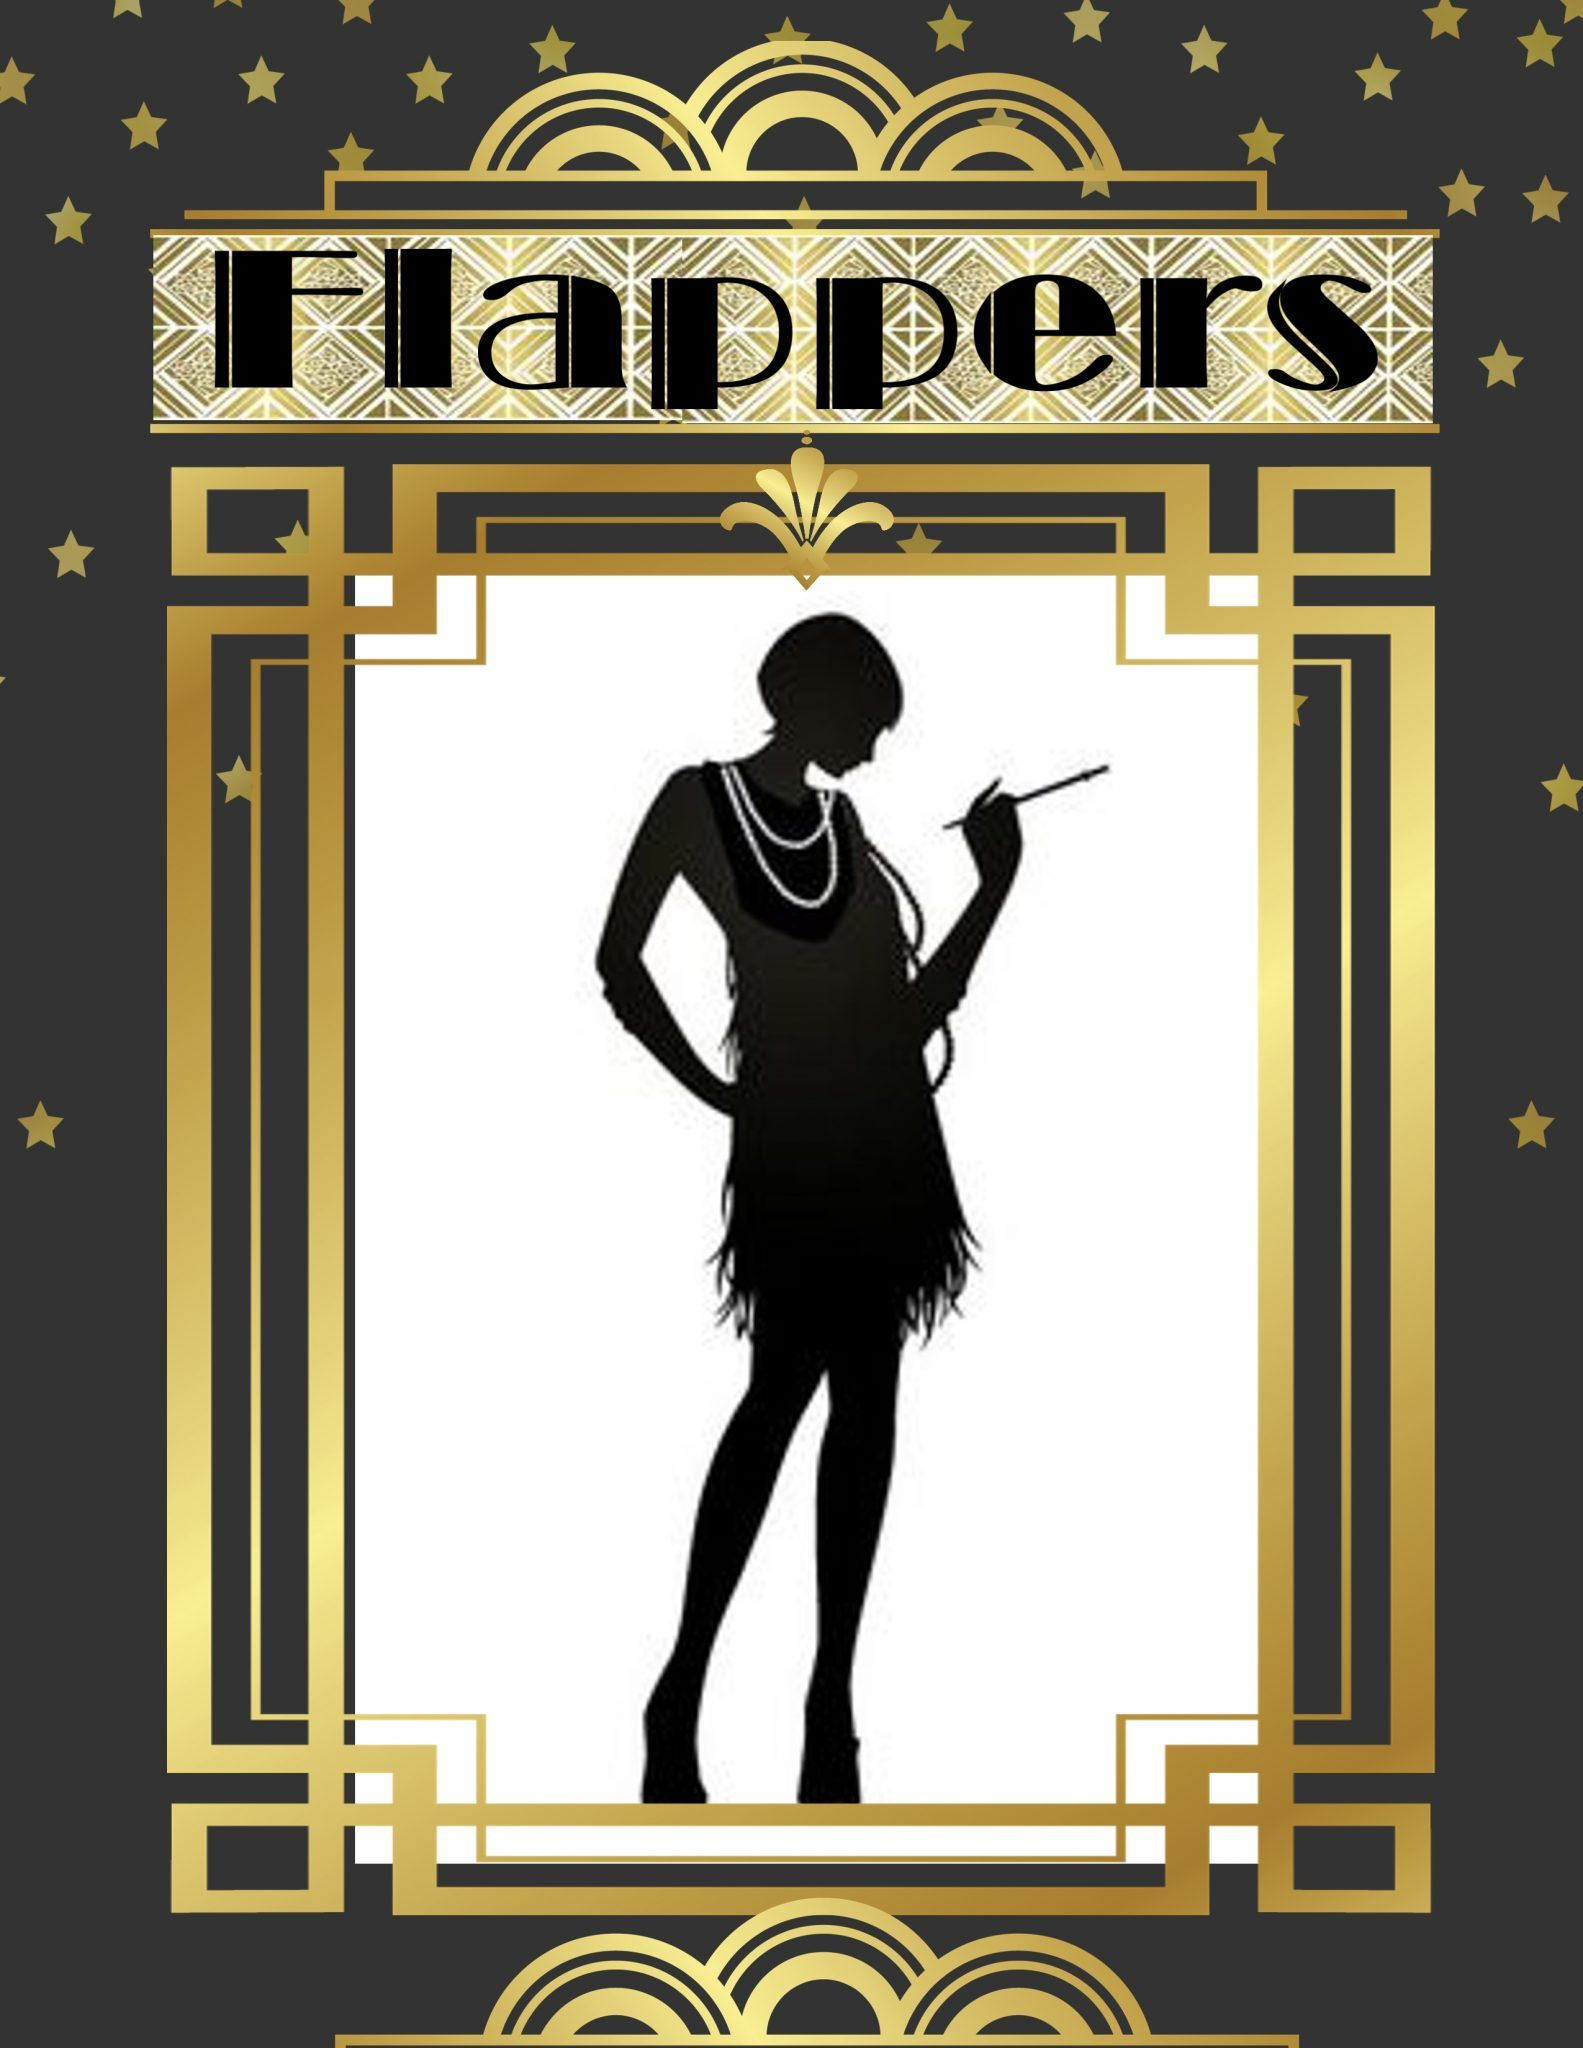 1920s dinner party clipart clipart images gallery for free.